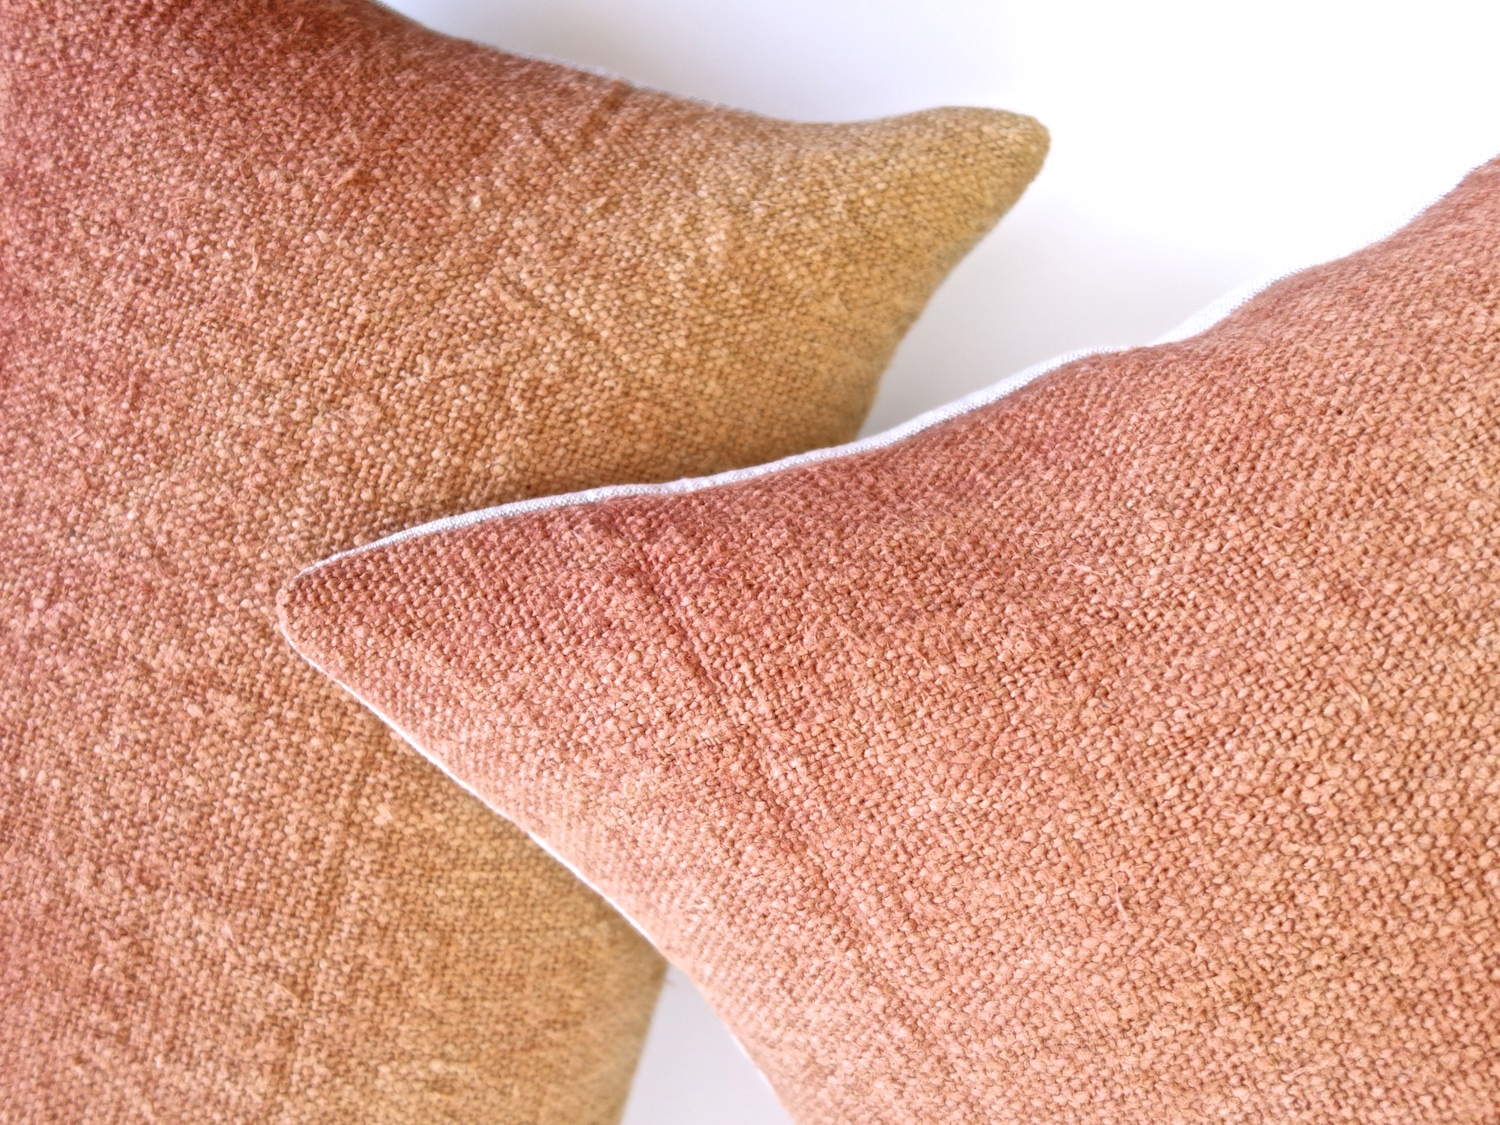 espanyolet_rust_pillows_corner_detail.jpg